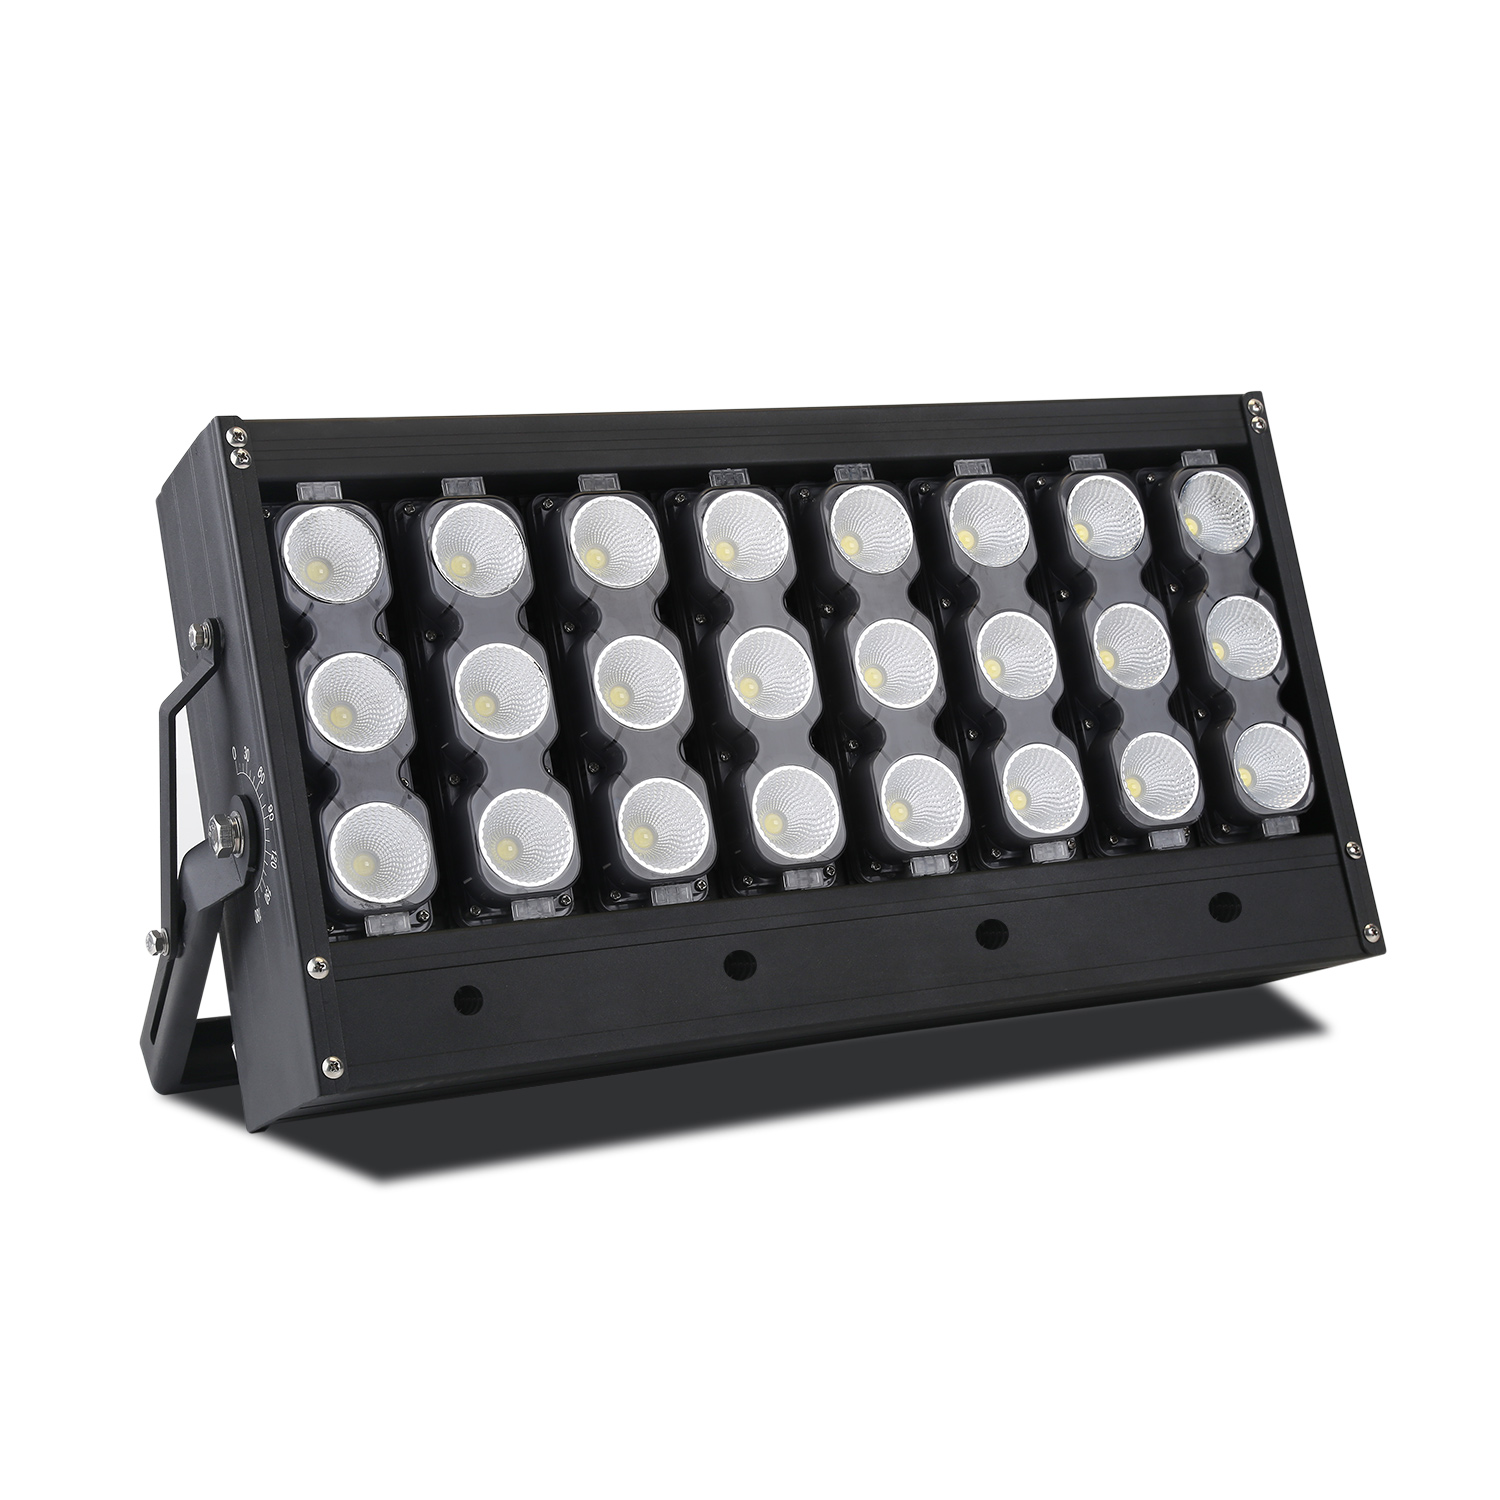 240w led flood light-flyledlight-side-flyledlighting